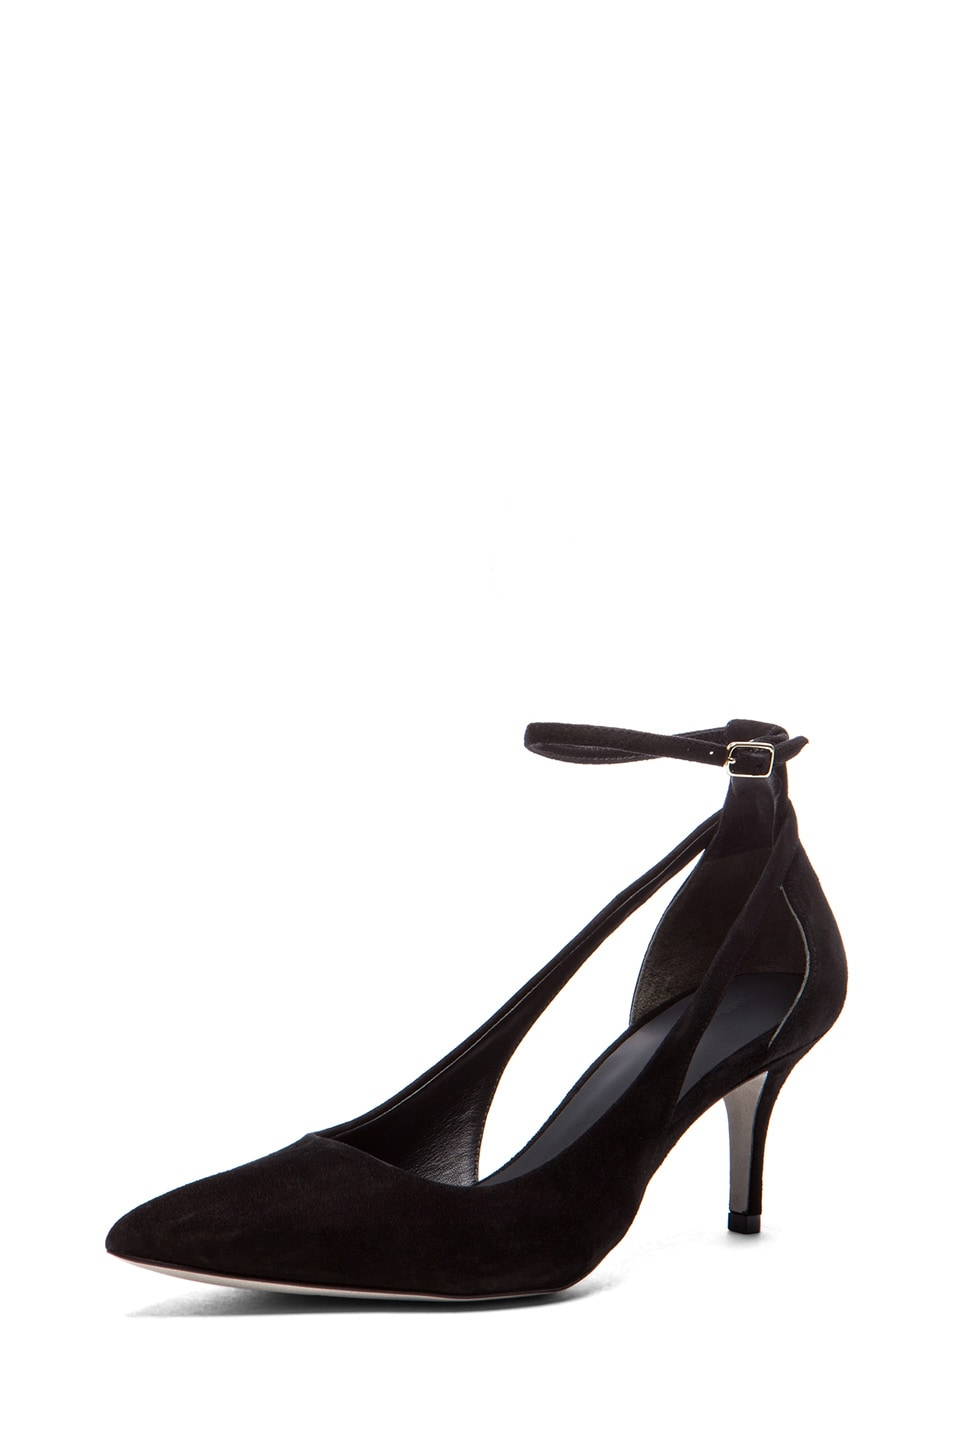 Image 2 of Alexander Wang Theres Kitten Suede Pump in Black